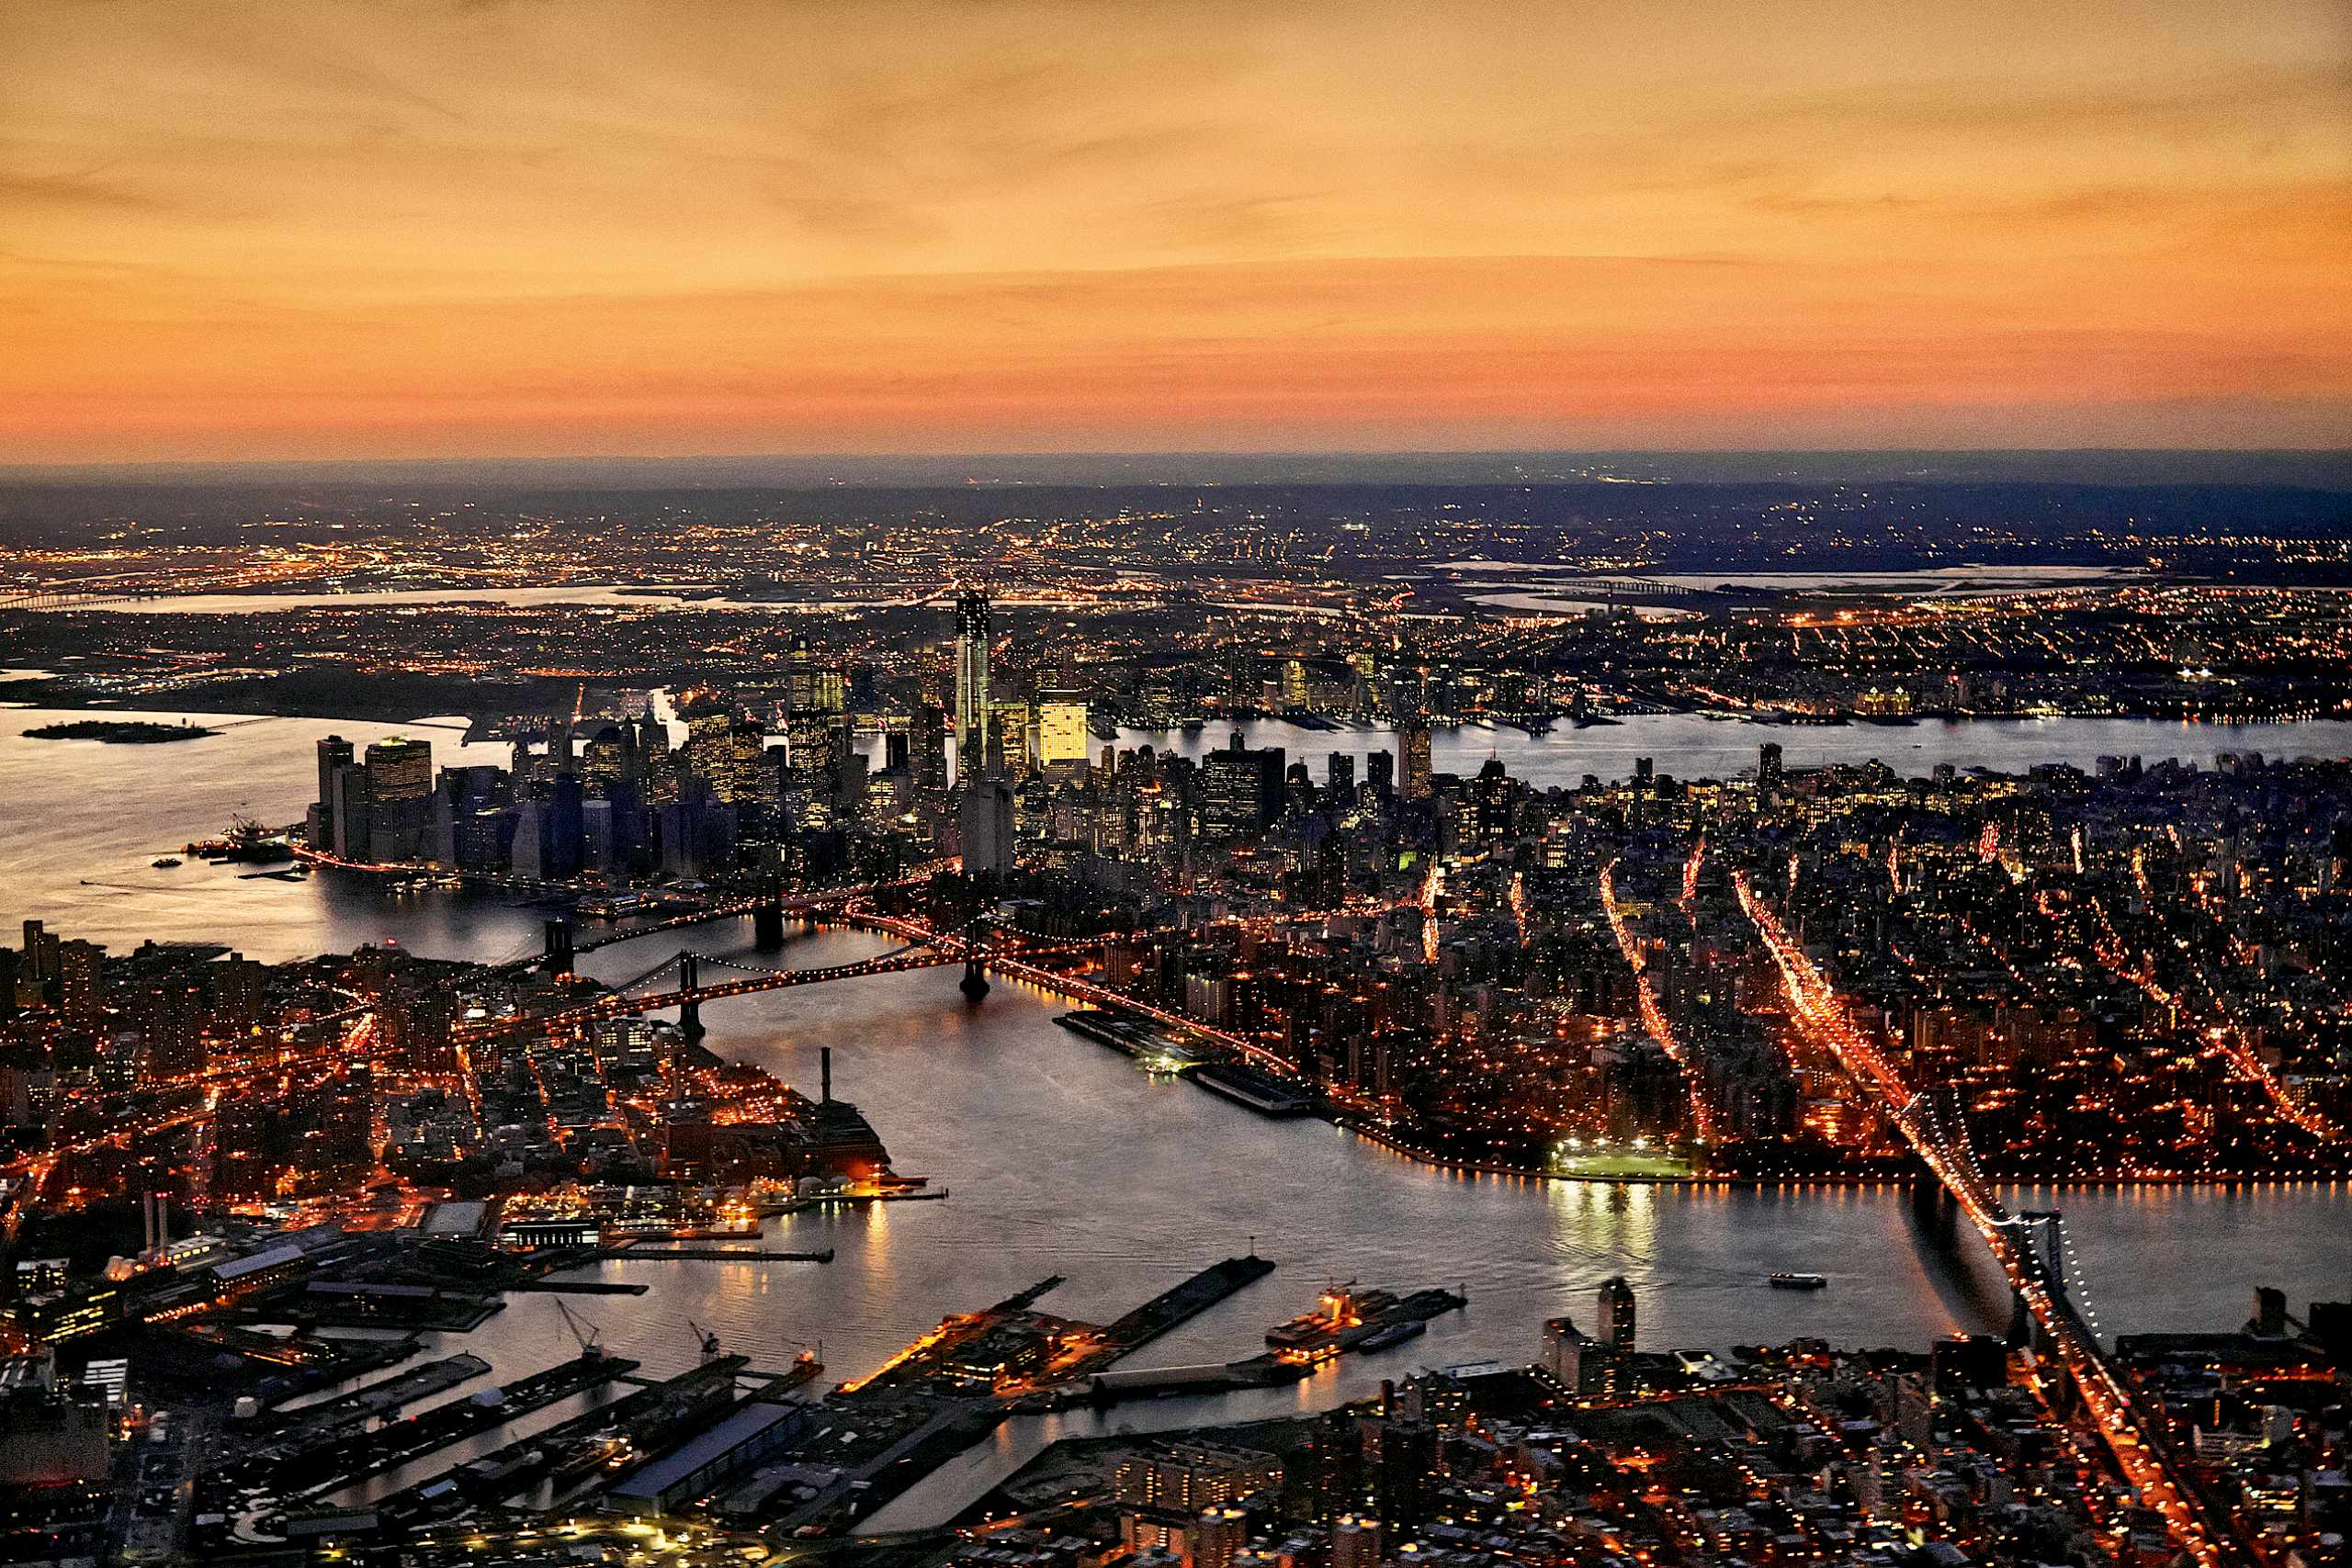 Day into night, New York